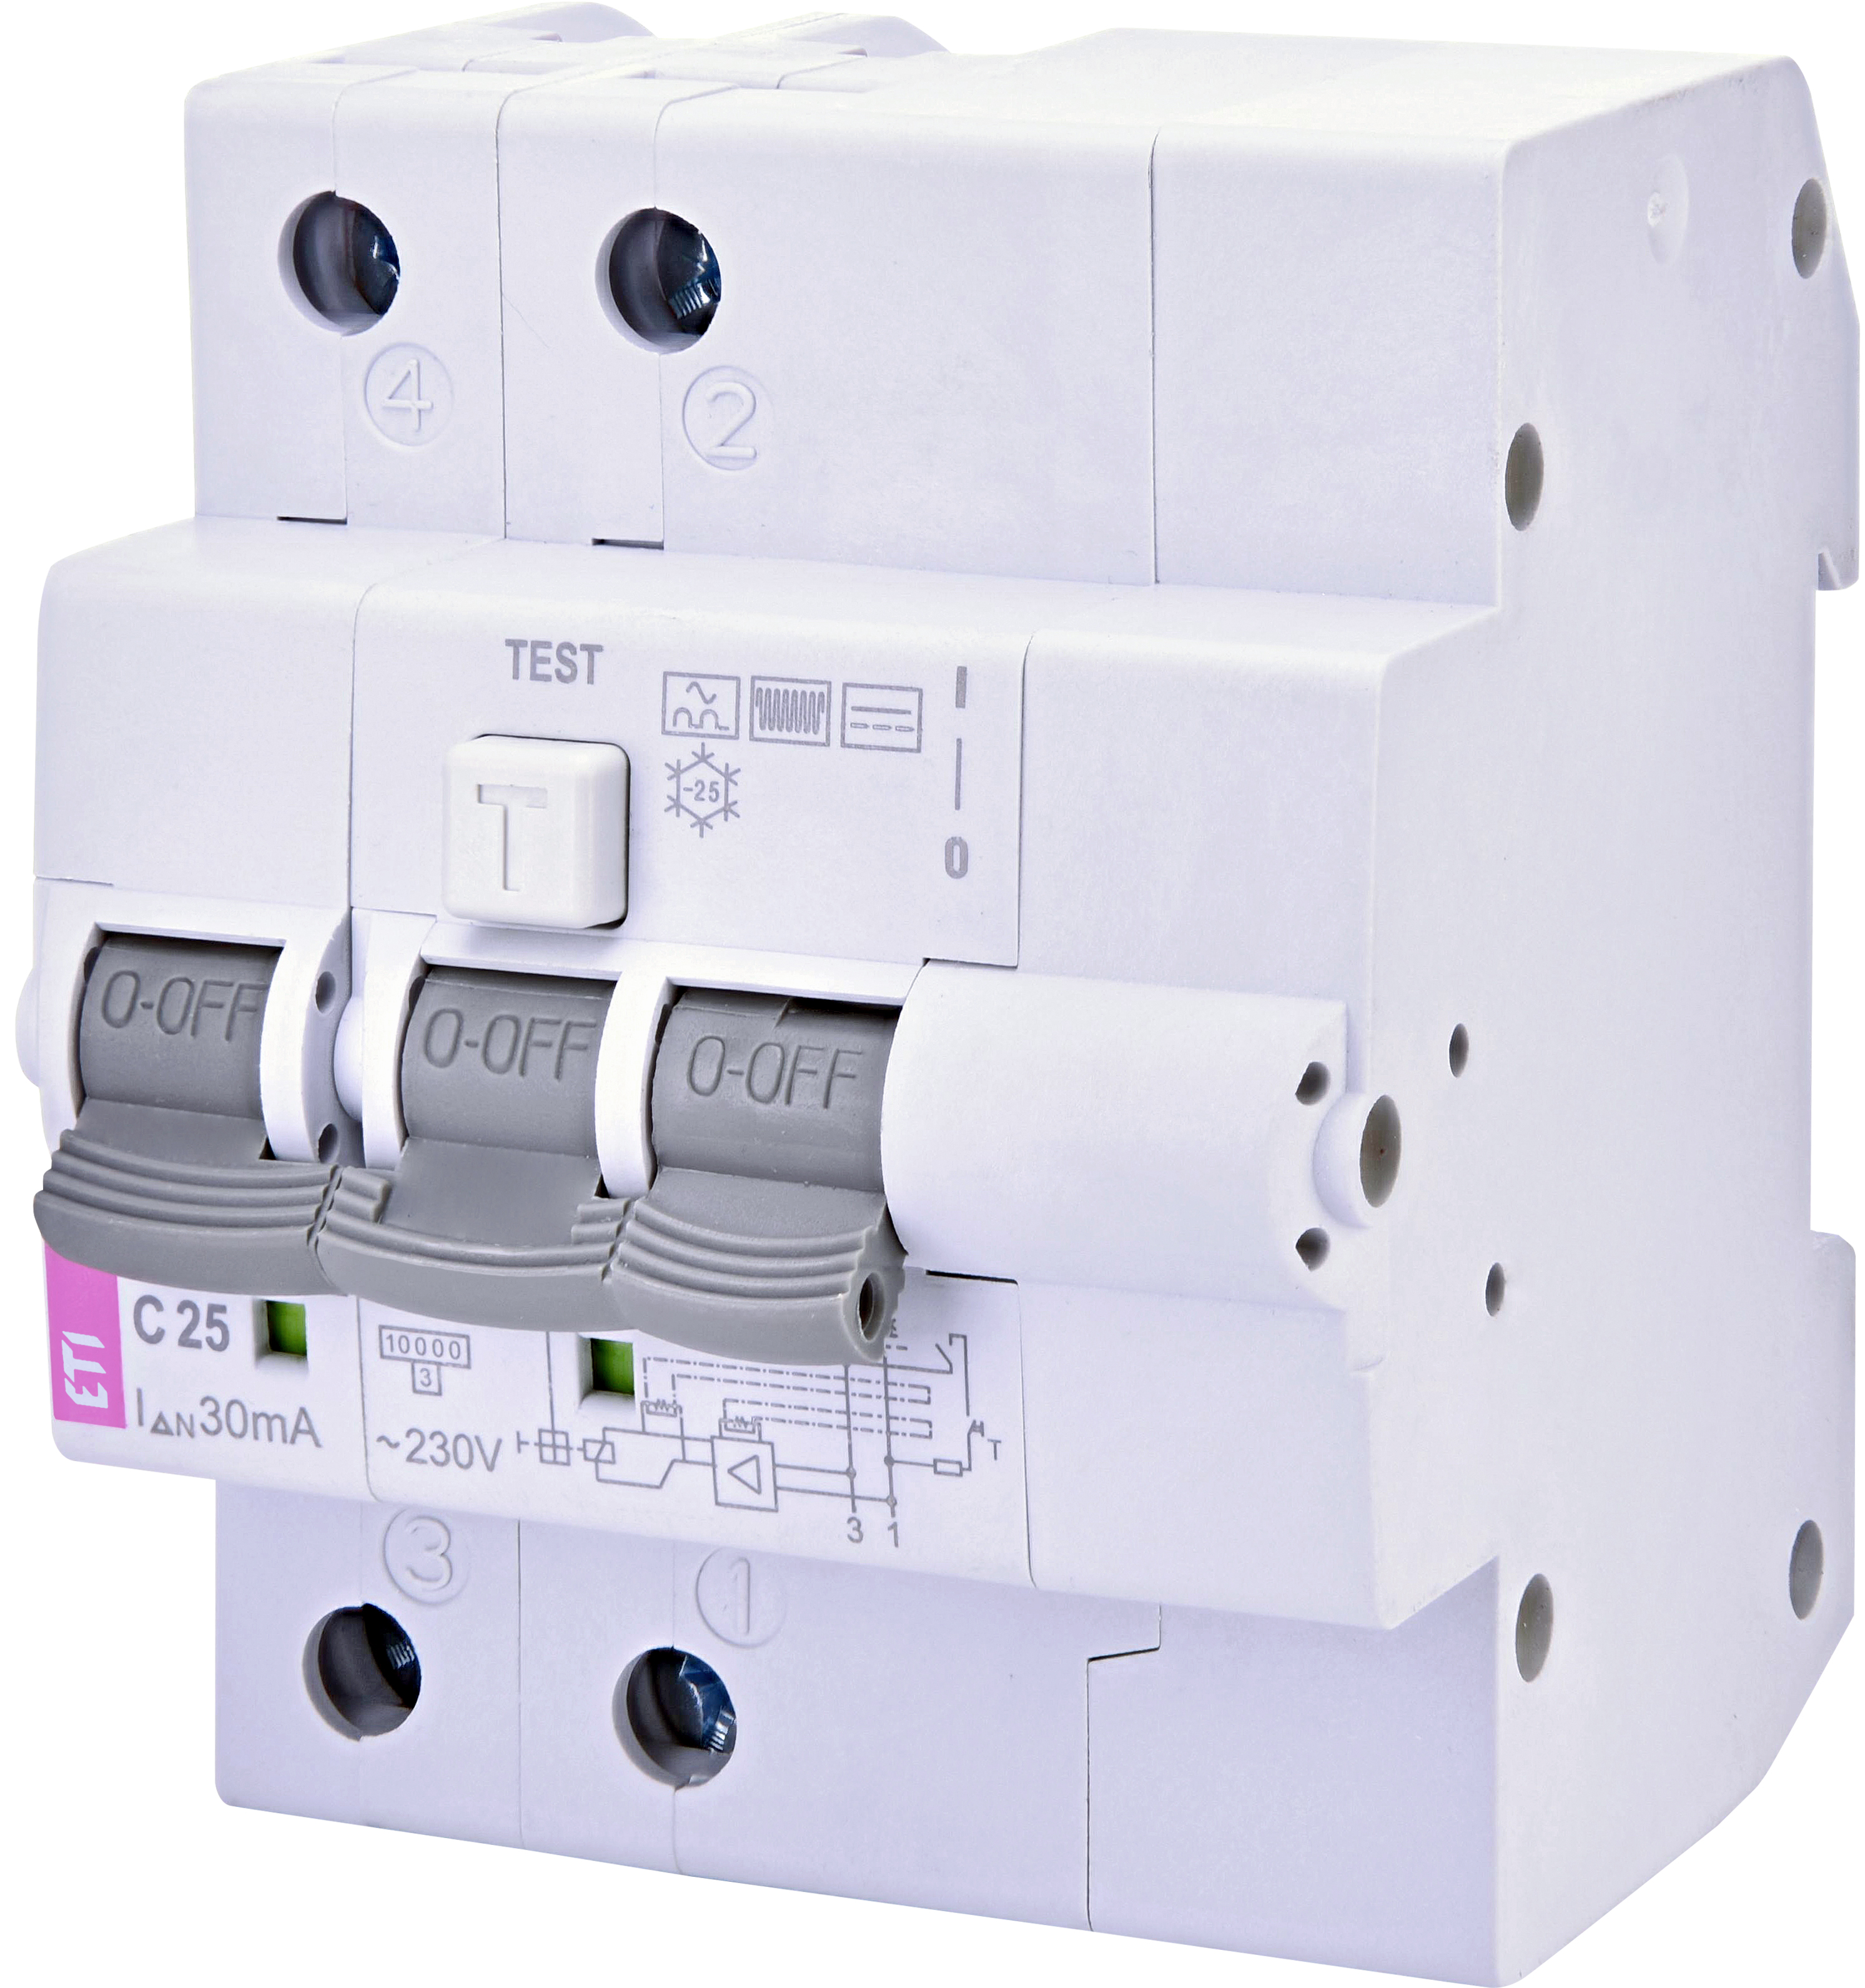 Products Services Eti General Switch Breaker Box Fuses Rcbo Kzs 4m 2p B Type Residual Current Circuit With